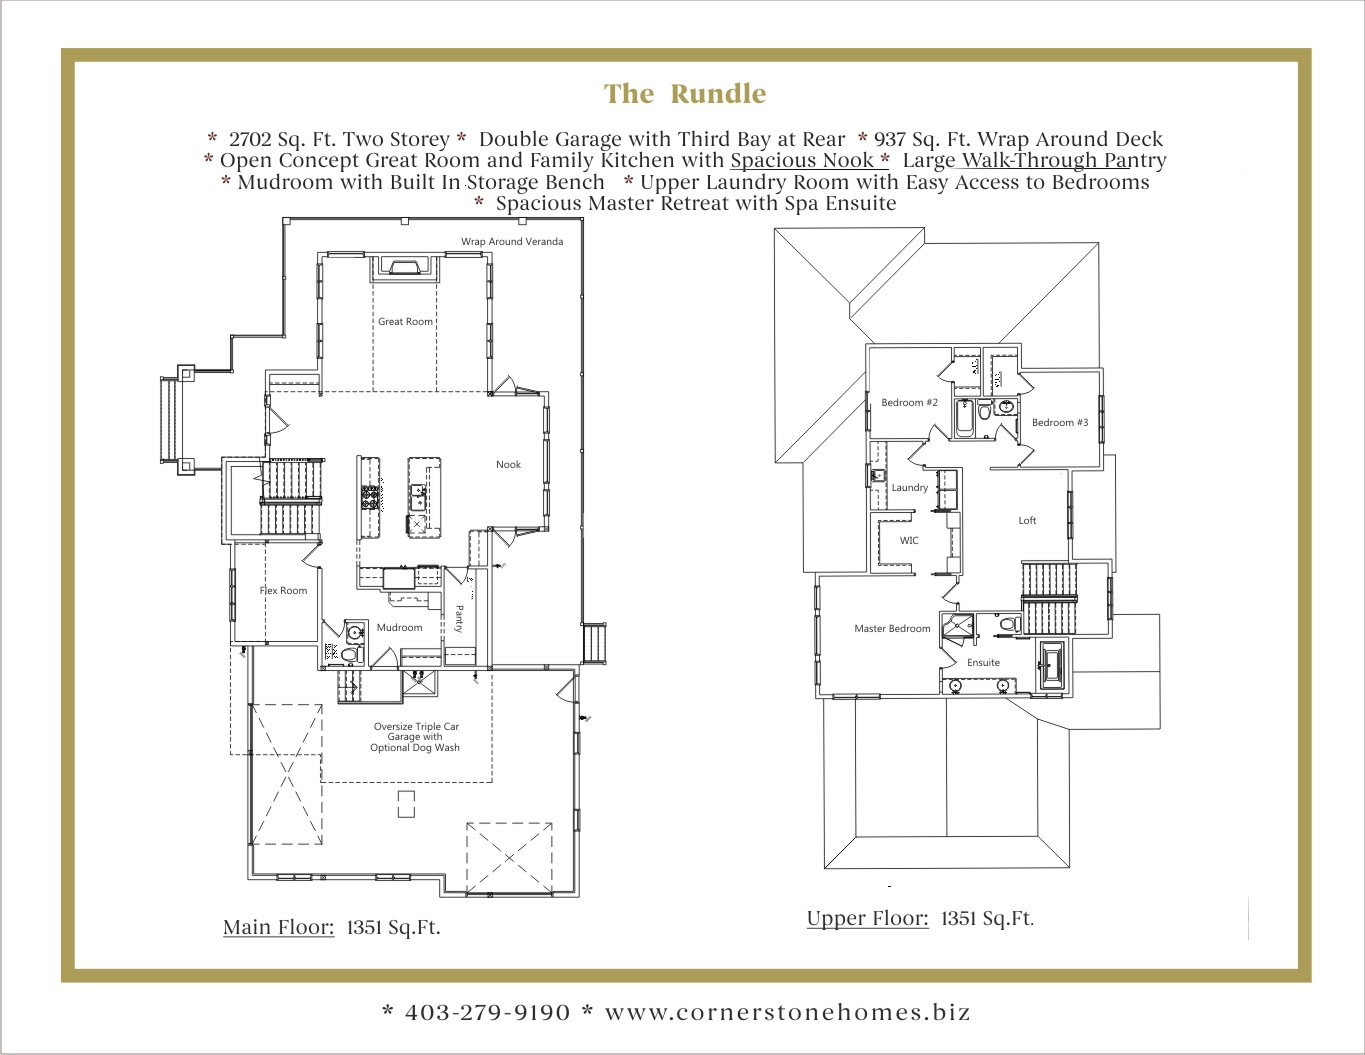 1532540291-Rundle Floor Plans